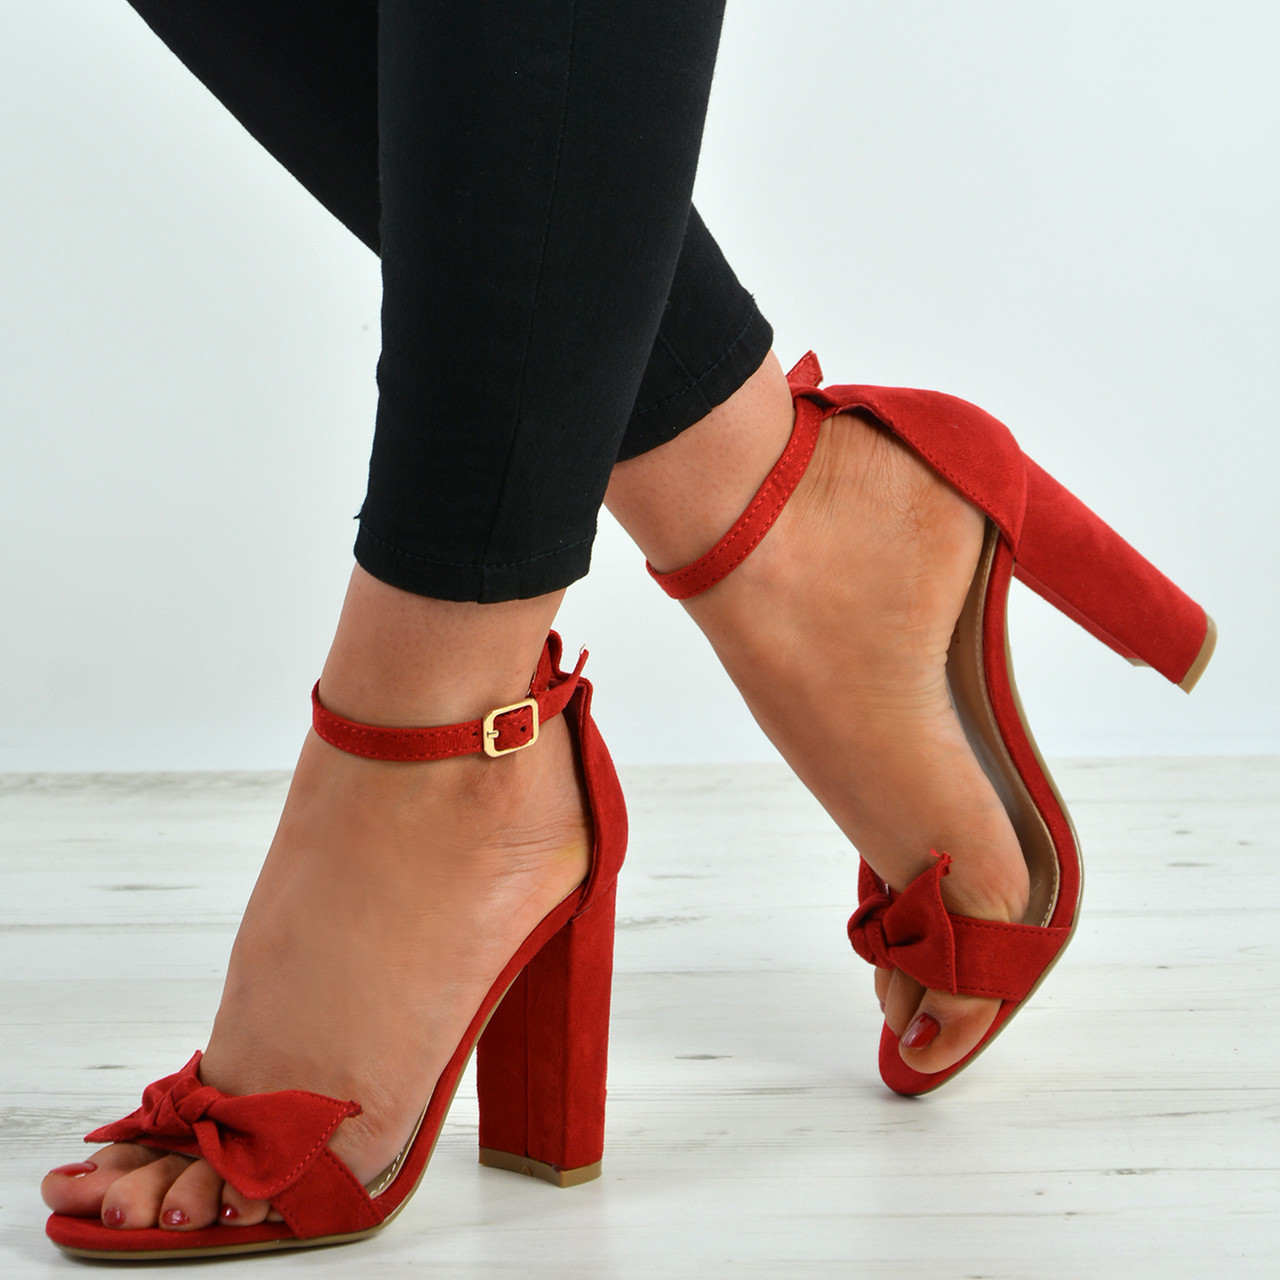 Red Shoes With Bow Uk